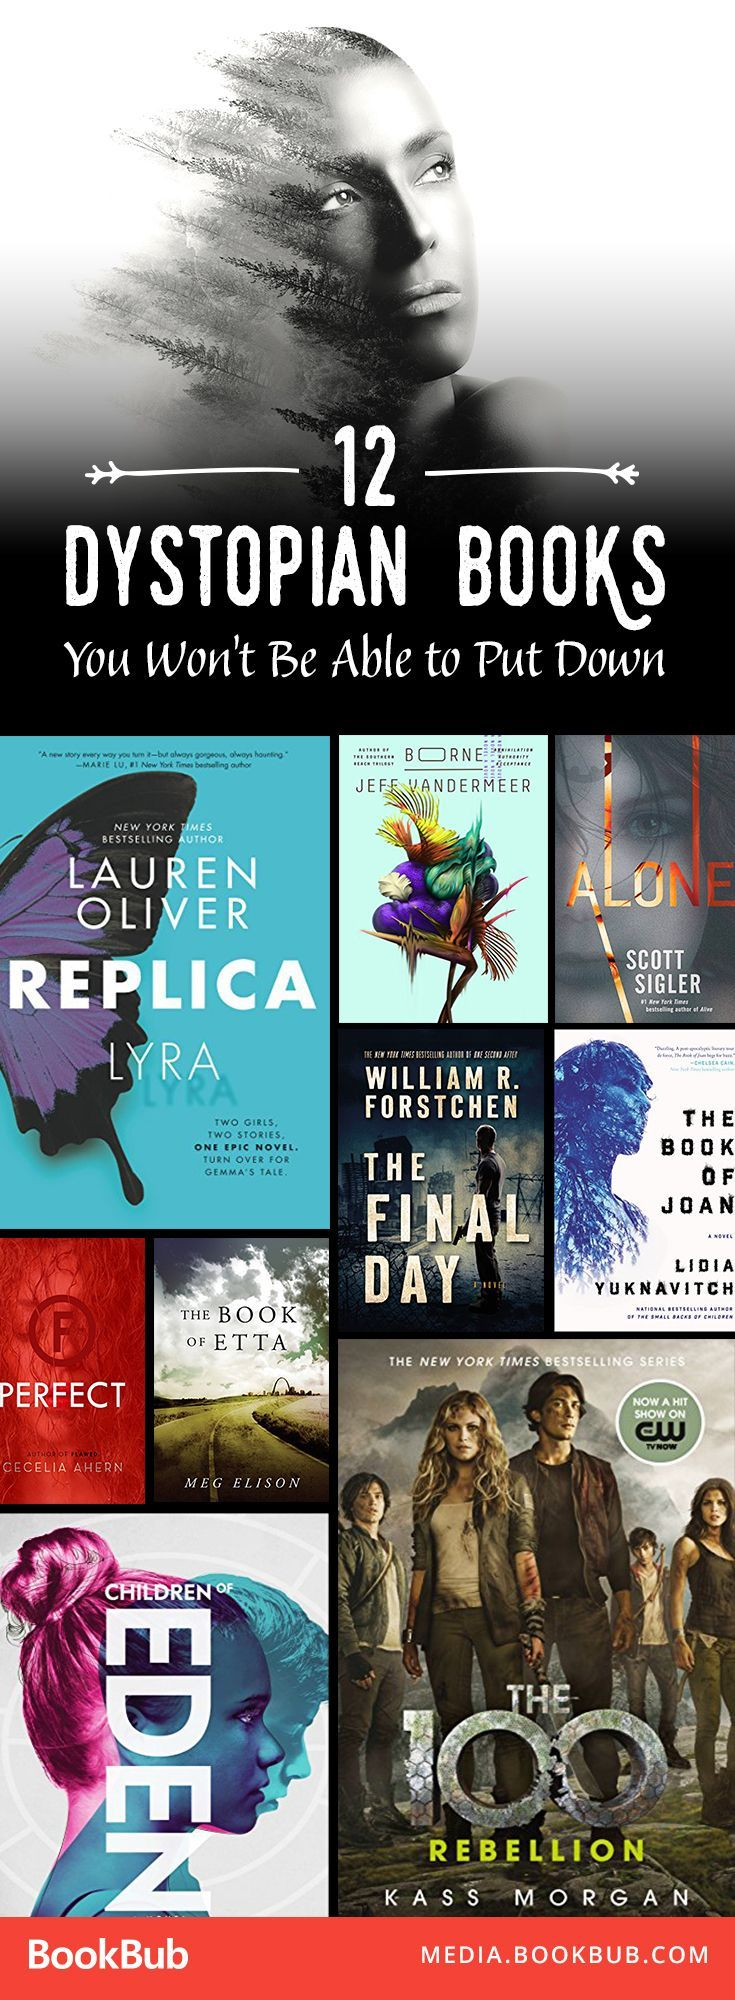 12 Dystopian Books Worth Adding To Your Reading List If You've Read The